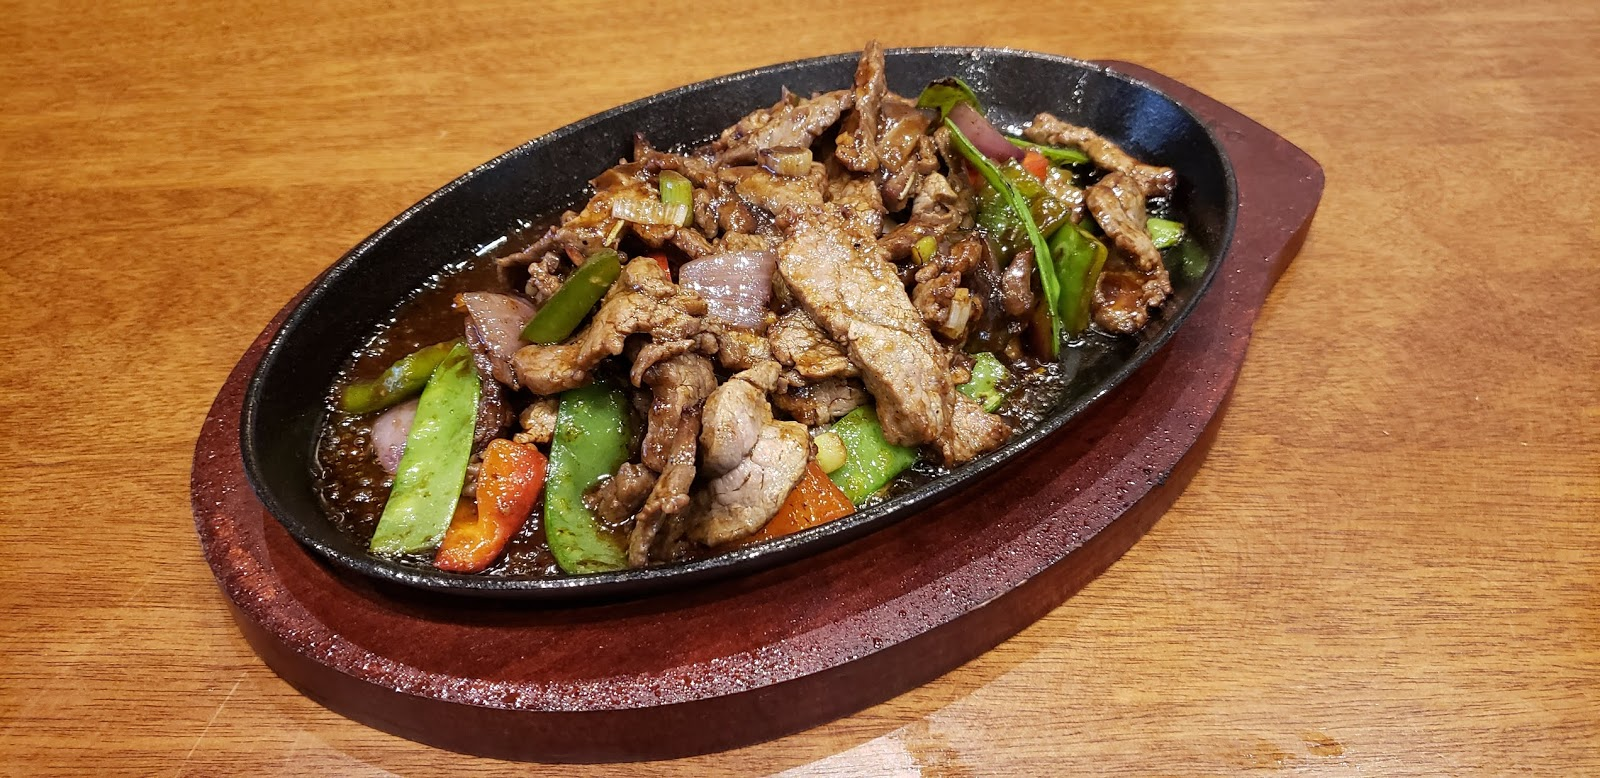 Sizzling Beef in Black Pepper Sauce